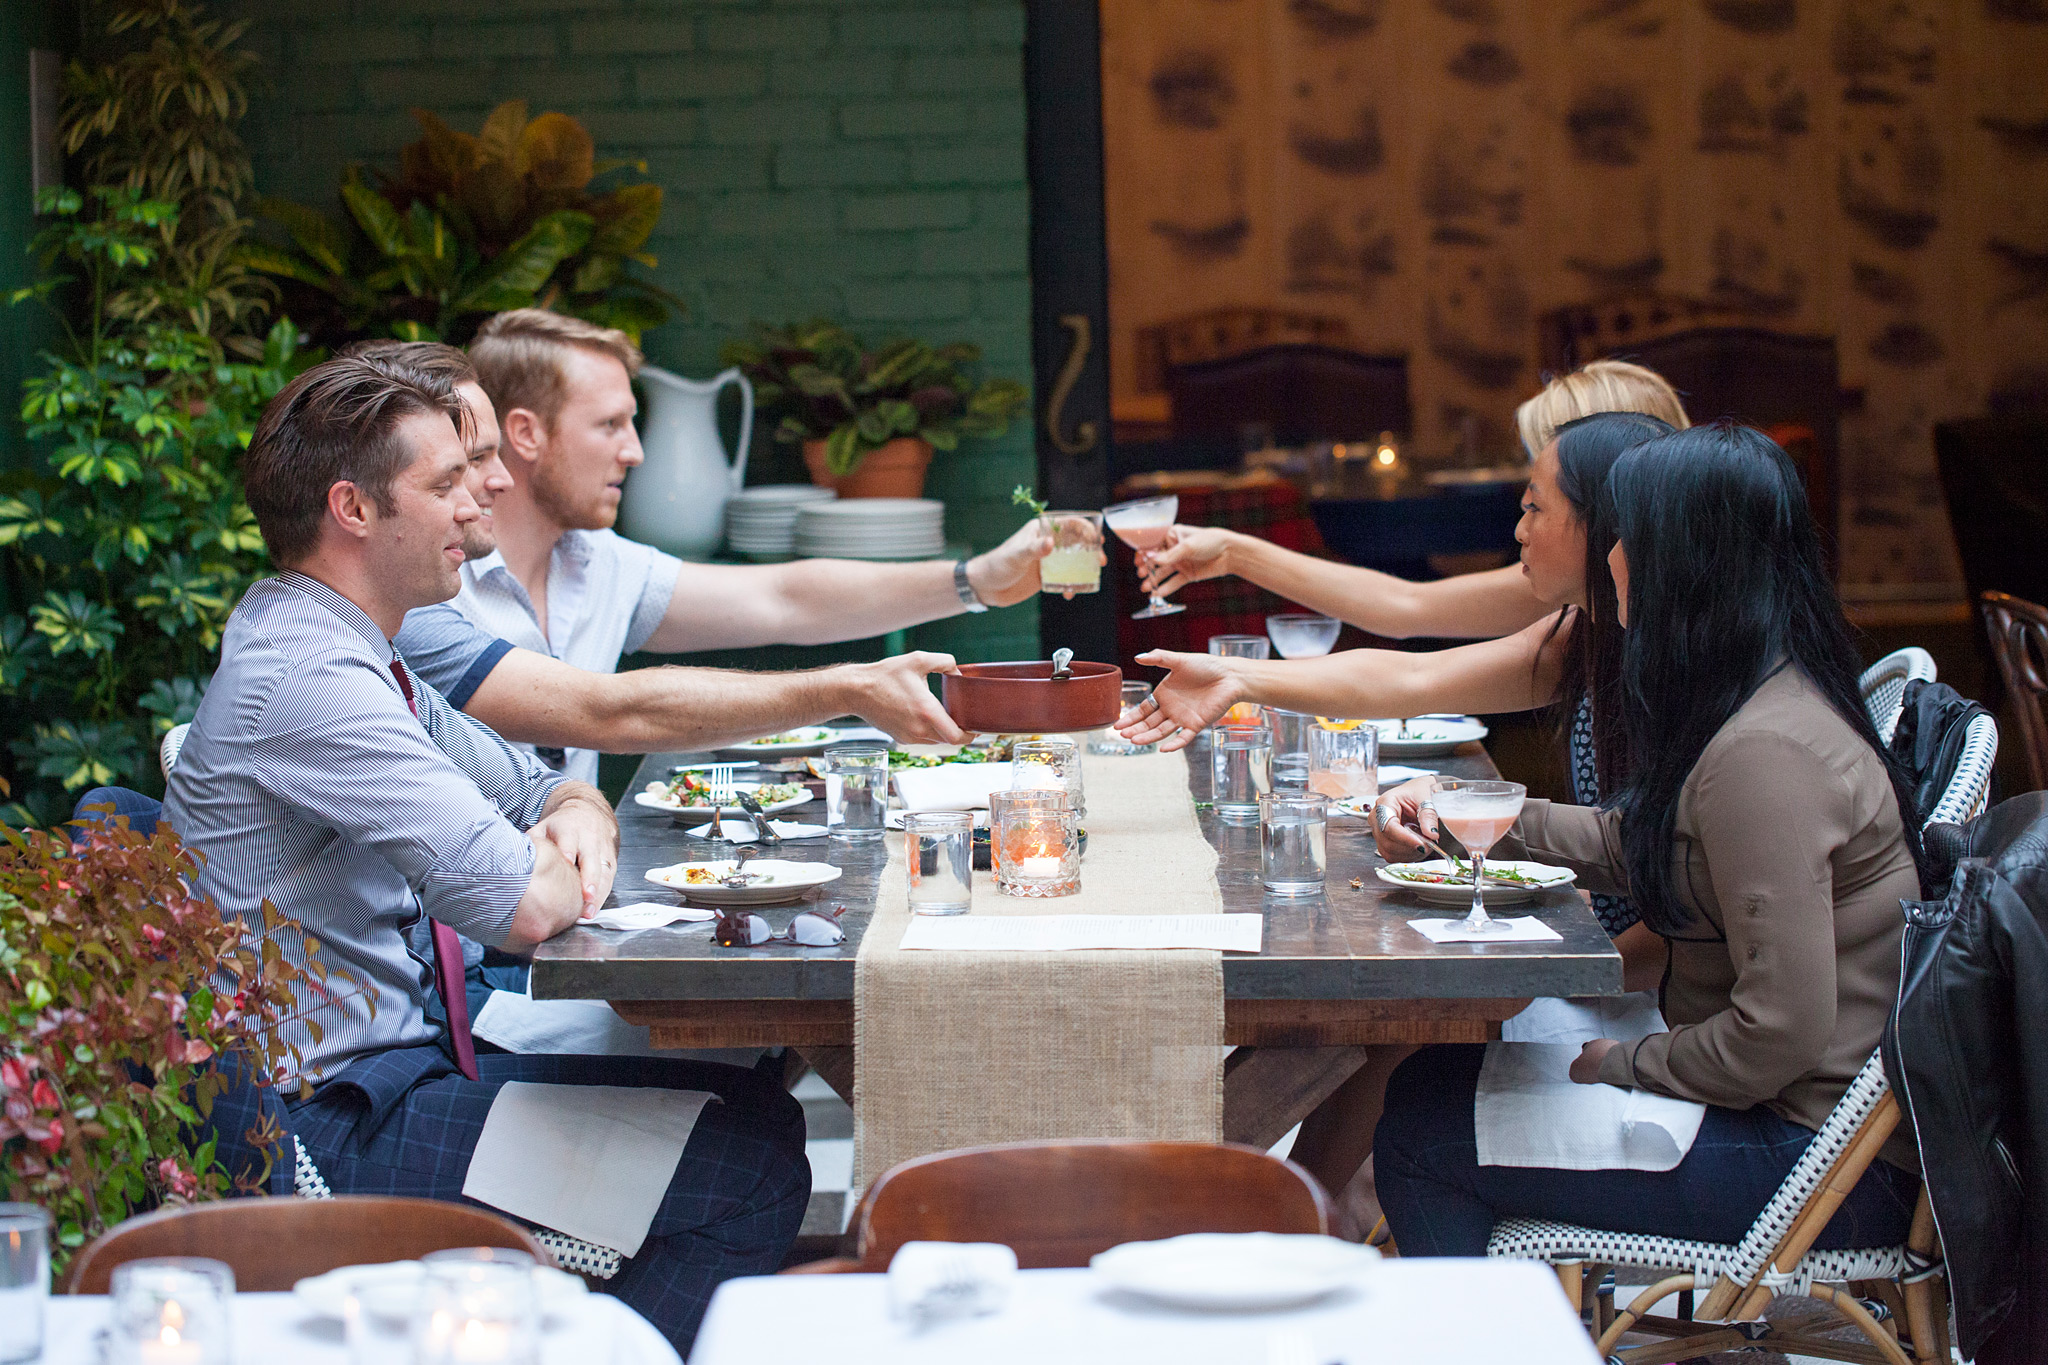 group of happy 20-somethings dining and toasting each other at large metal toppped table in courtyard surrounded by other tables and lush green plants